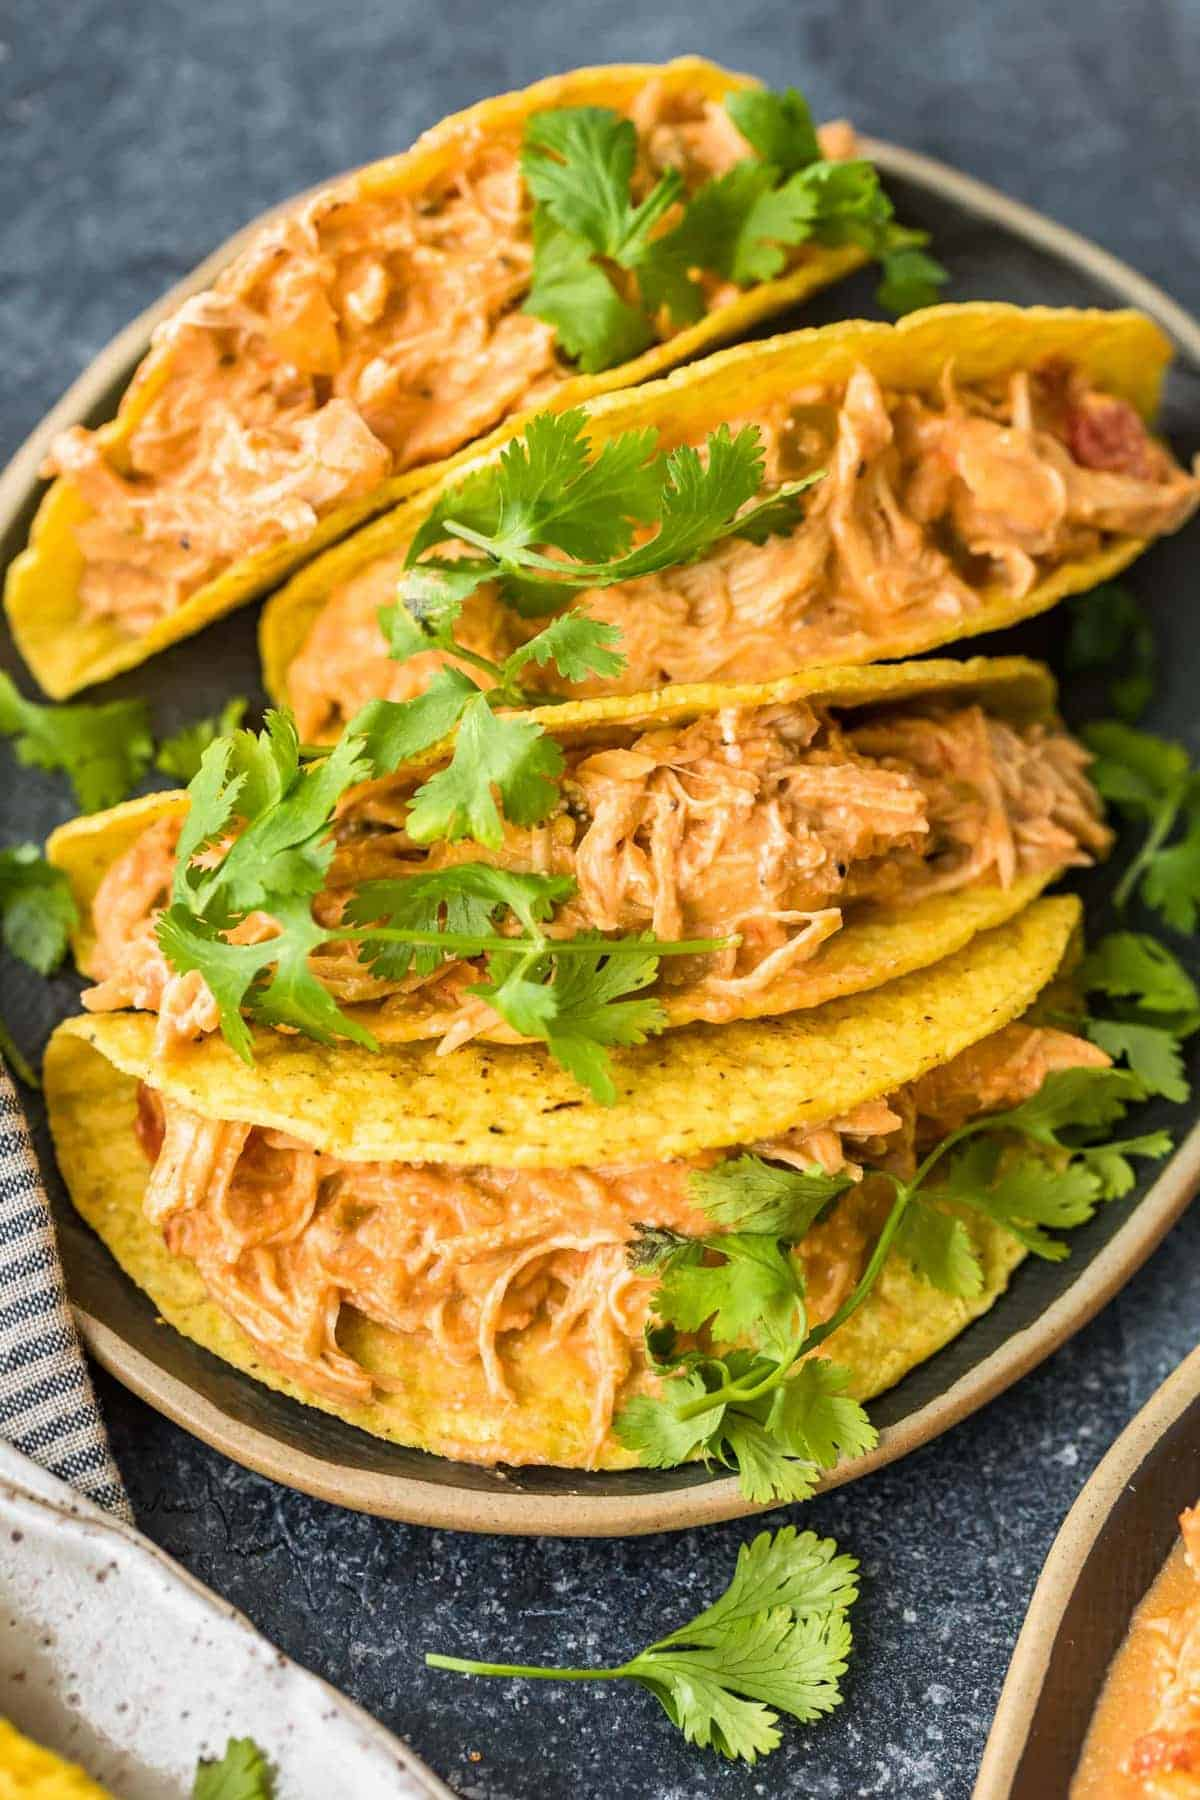 Crockpot Salsa Chicken served in tacos with fresh herbs